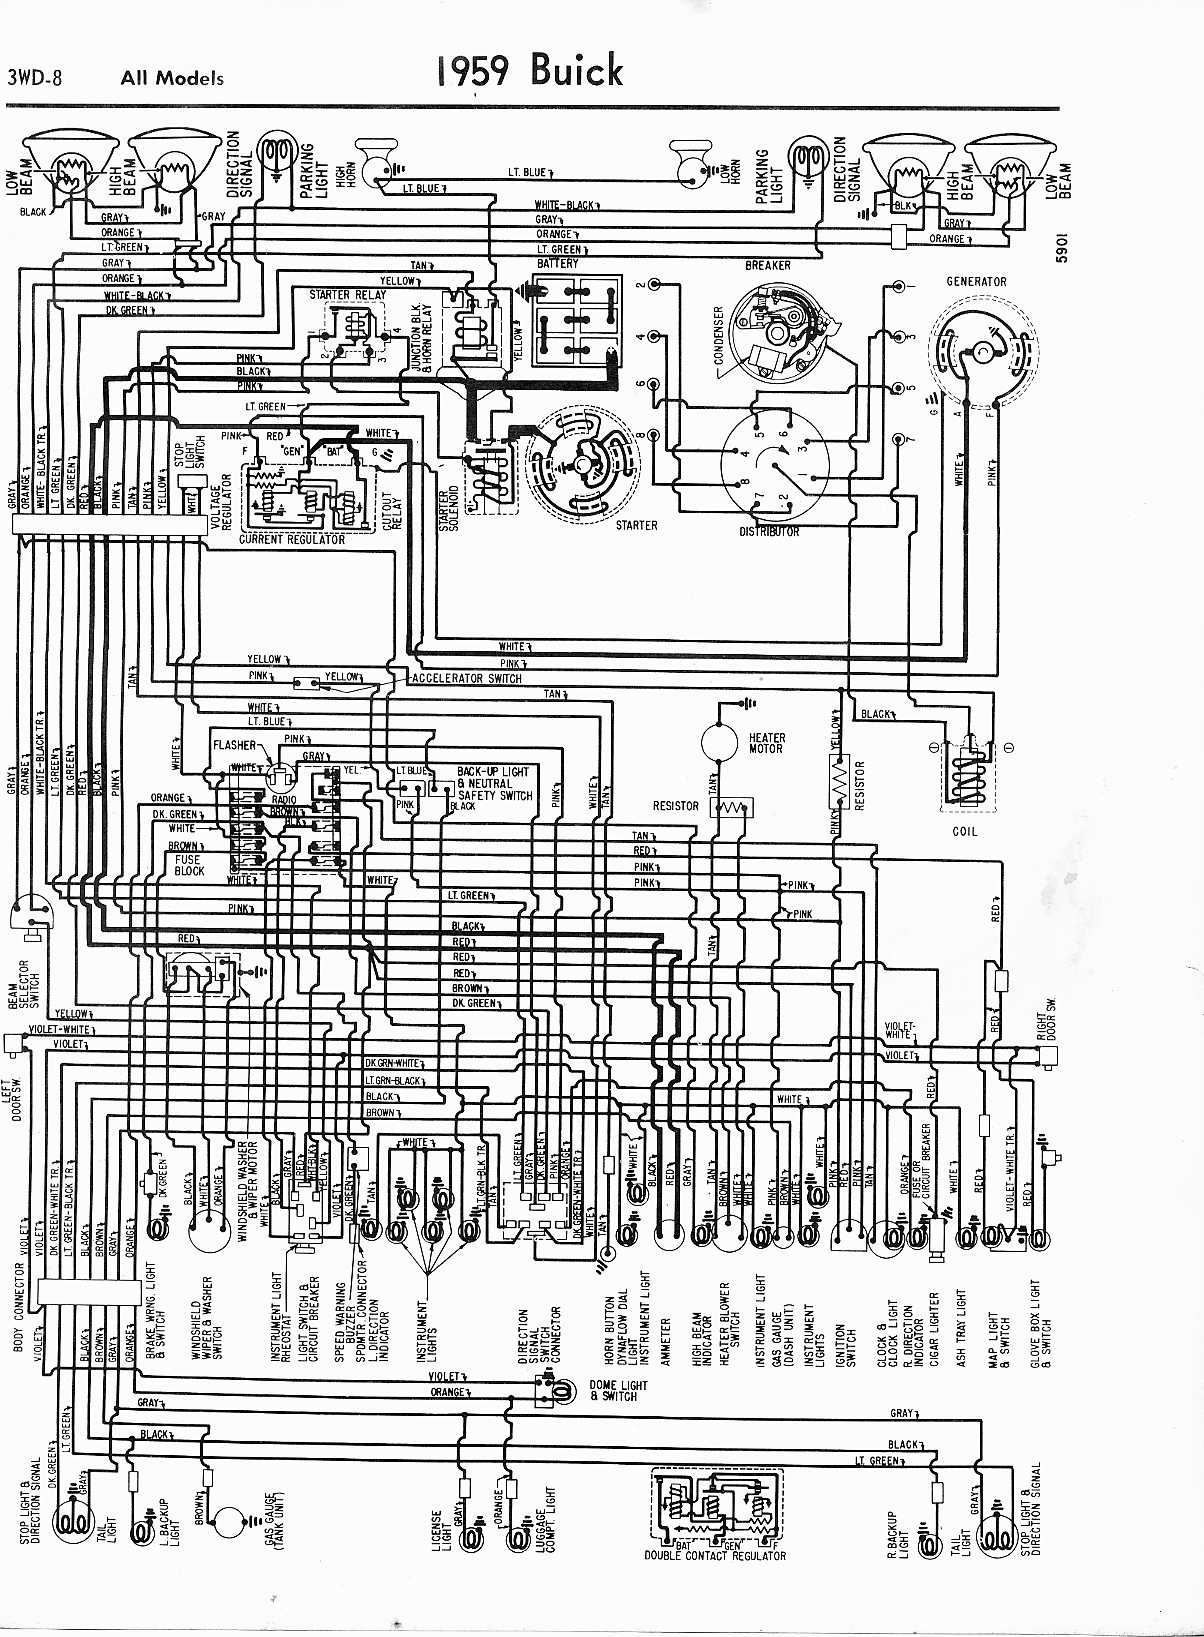 gmc stereo wiring diagram for spotlights 95 buick regal radio get free image about